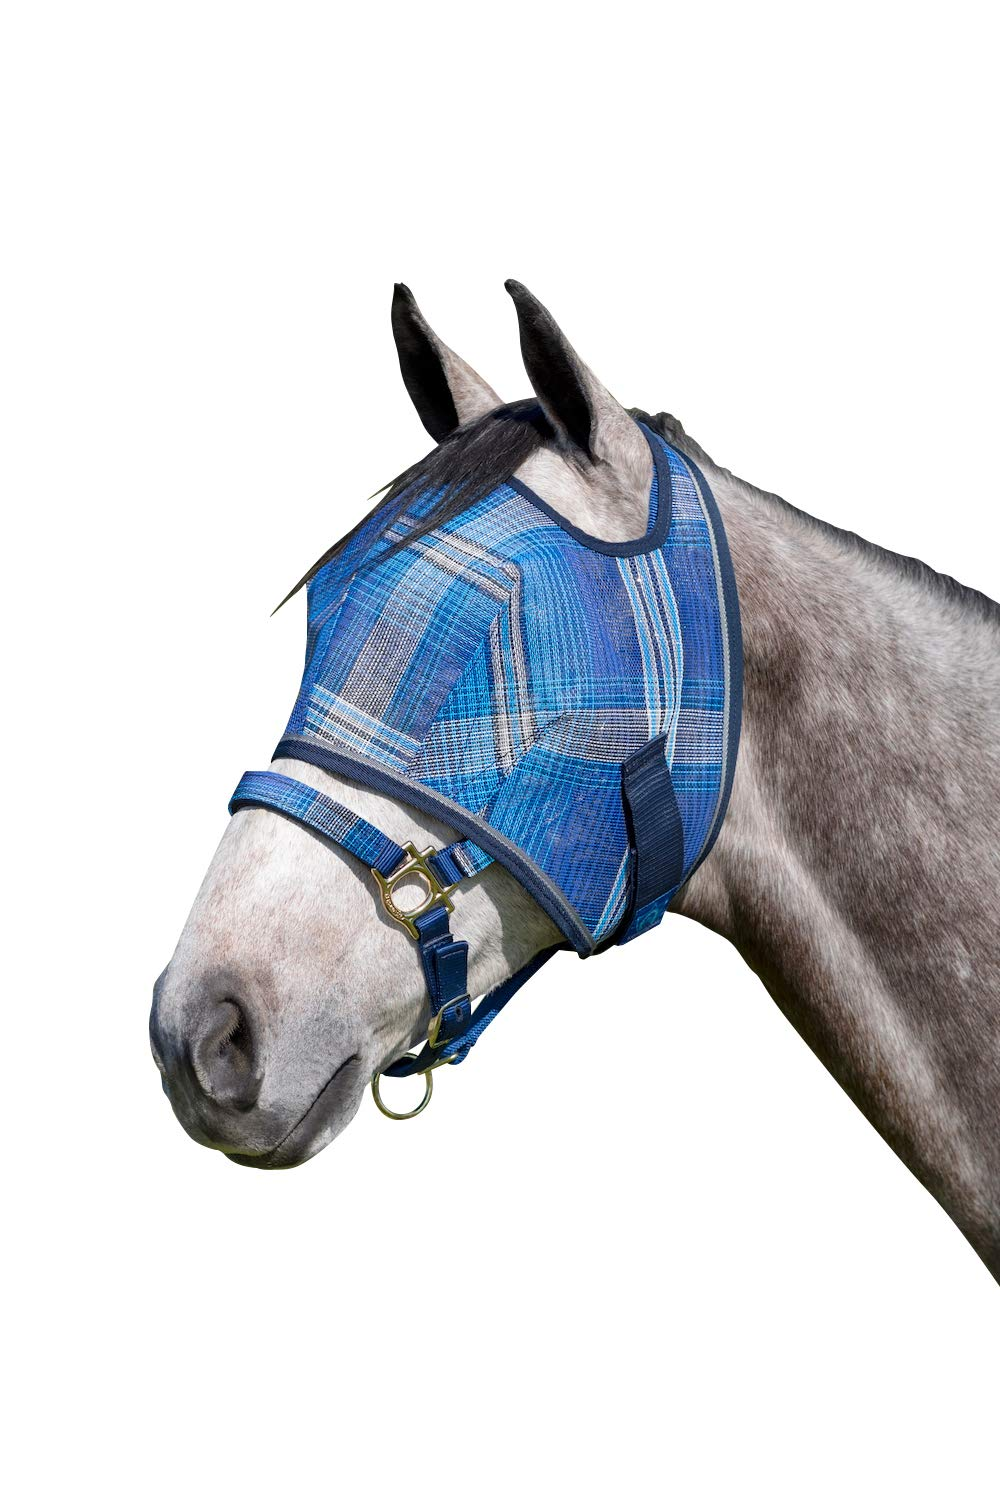 Kensington Fly Mask Web Trim - Protects Horses Face and Eyes from Biting Insects and UV Rays While Allowing Full Visibility - Ears and Forelock Able to Come Through The Mask (Medium, Kentucky Blue)